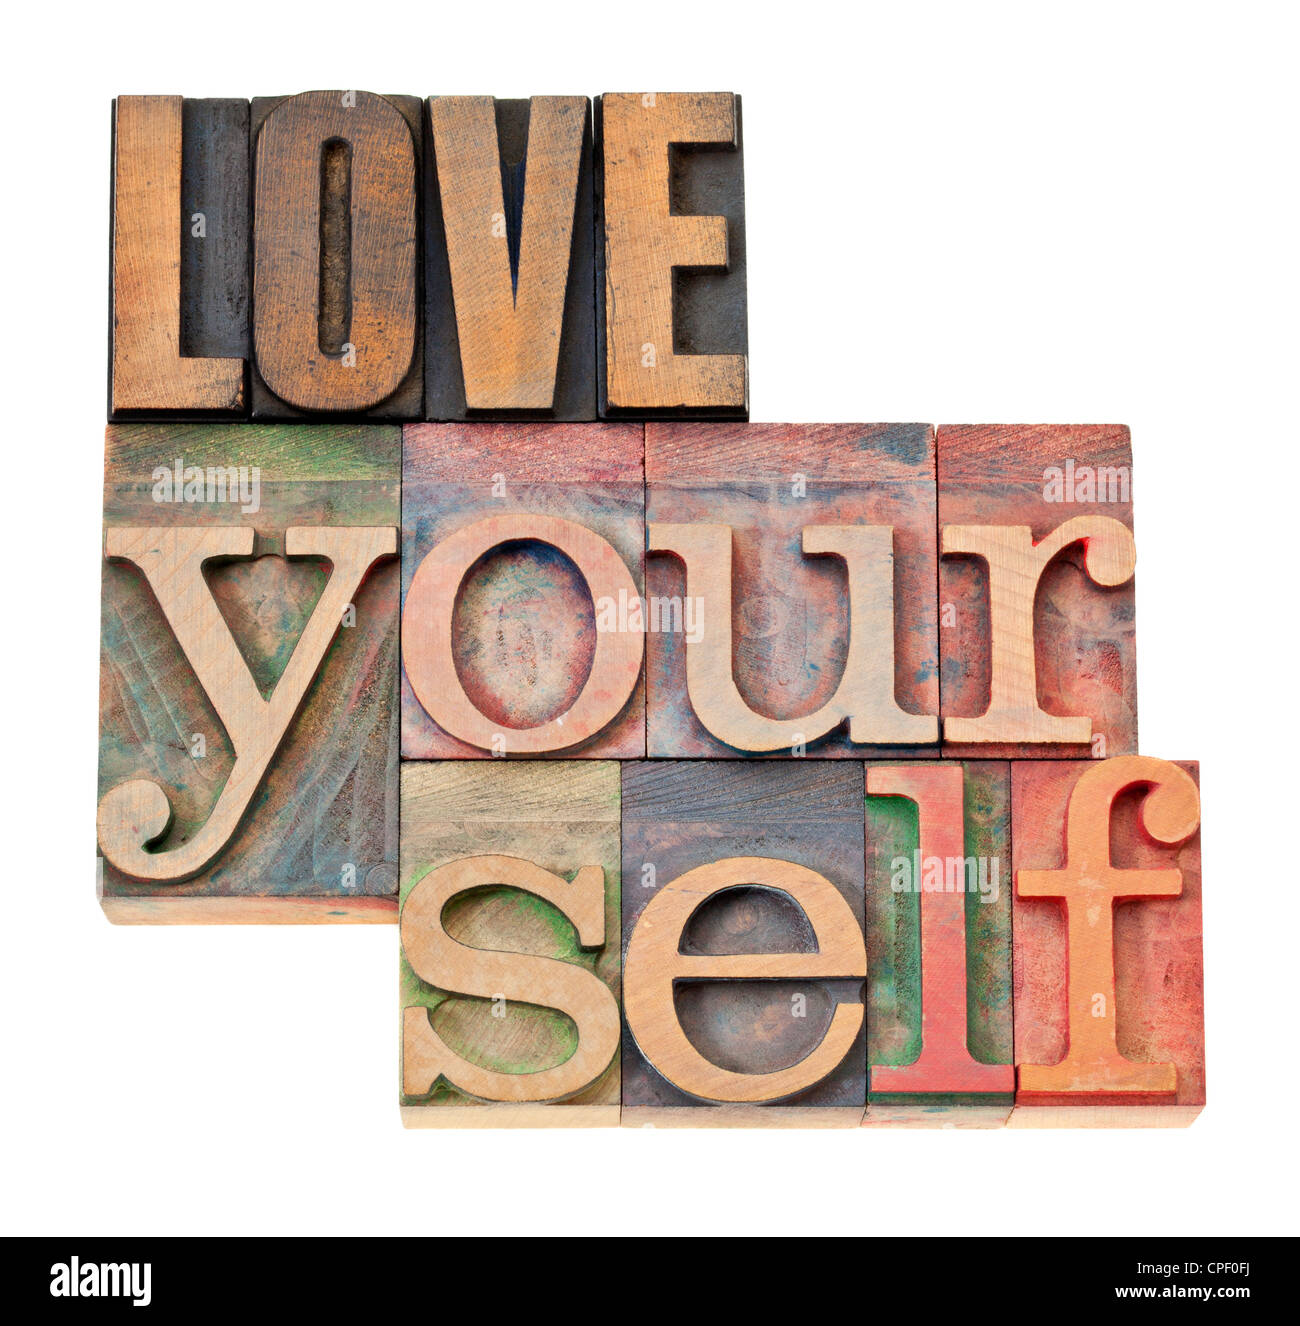 love yourself - self esteem concept - isolated text in vintage letterpress wood type - Stock Image